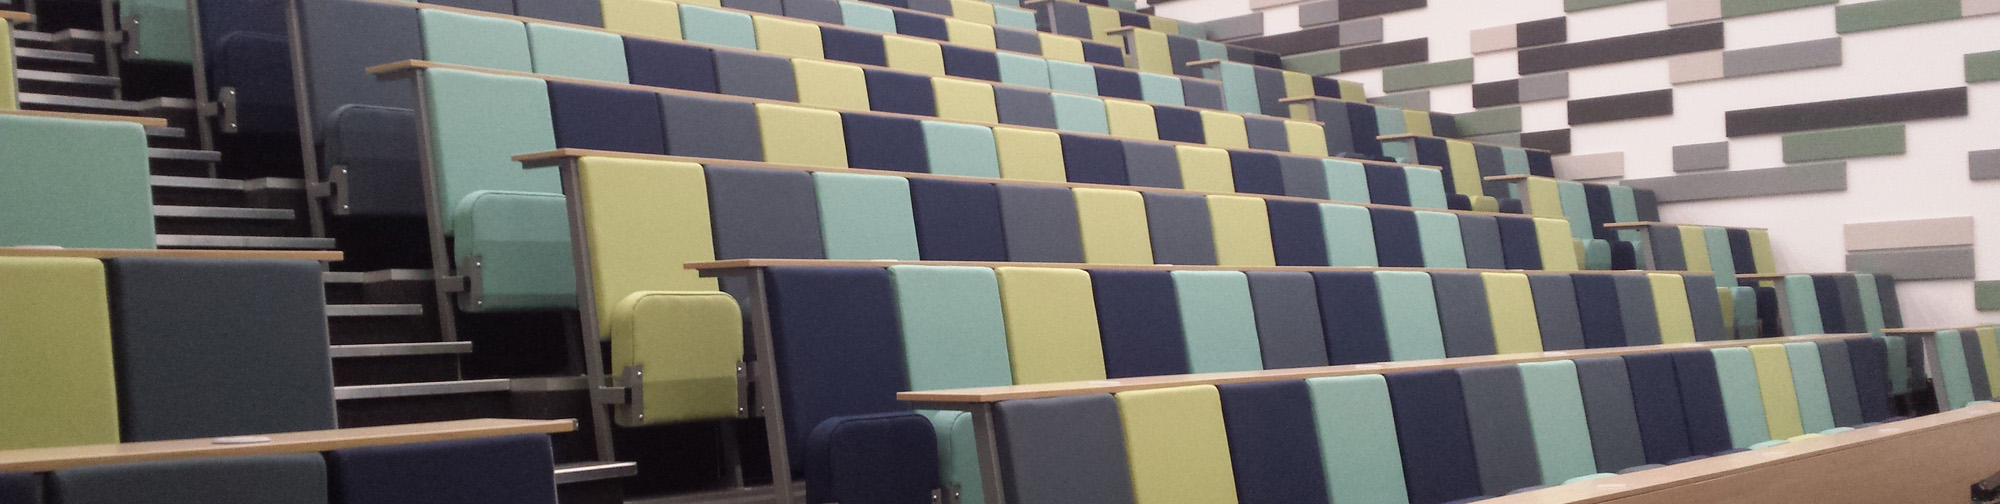 University lecture theatre with Evertaut Diploma lecture chairs upholstered in shades of green fabric